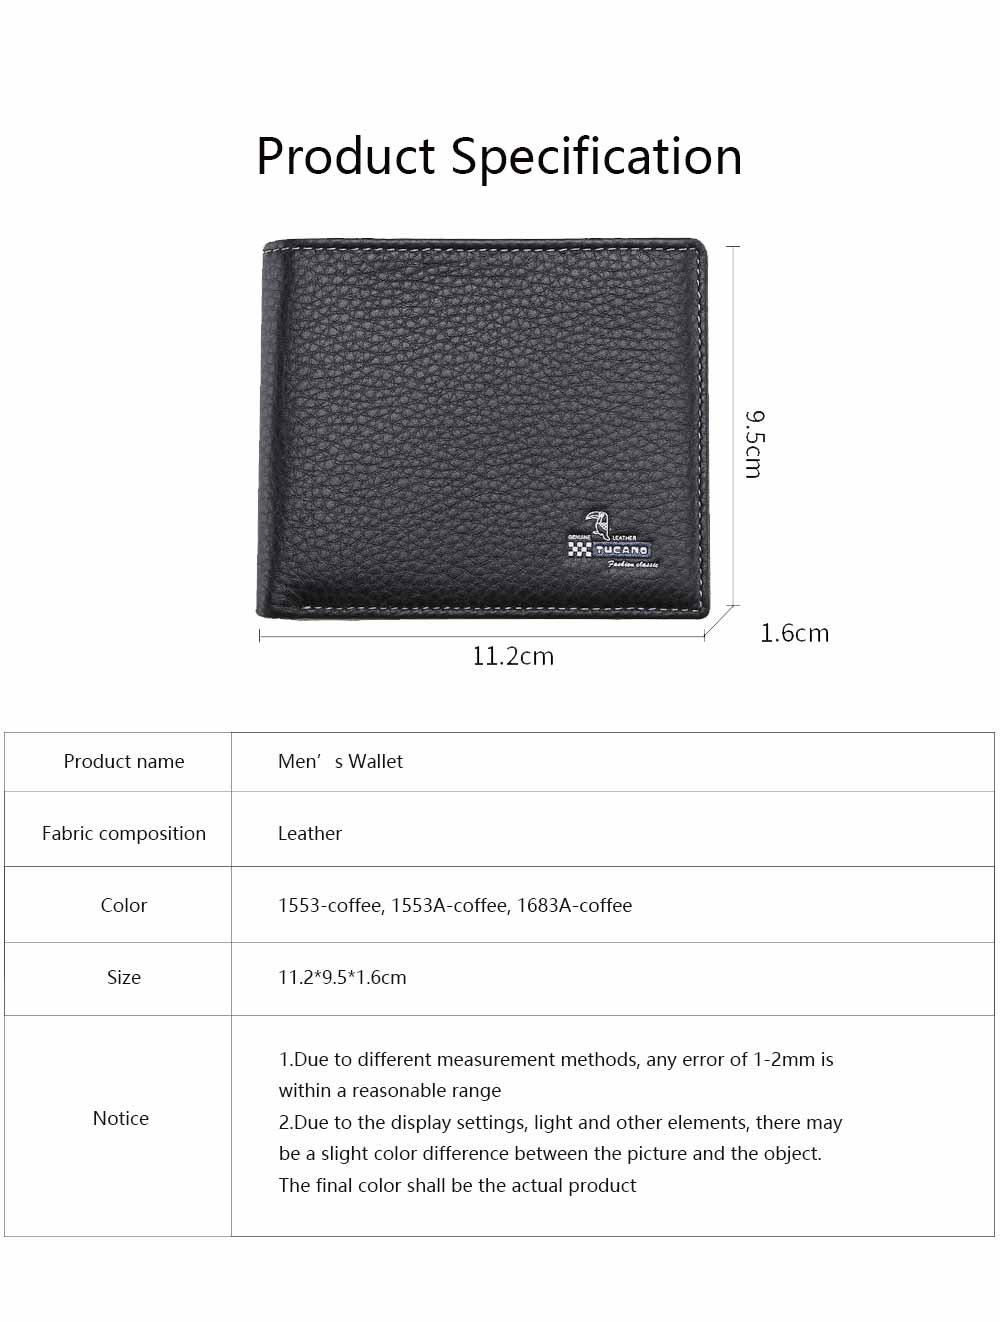 Bifold Side Flip Wallet, High-End Business Men Wallet, Men's Multifunctional Handbag, Extra Capacity Travel Wallet 5